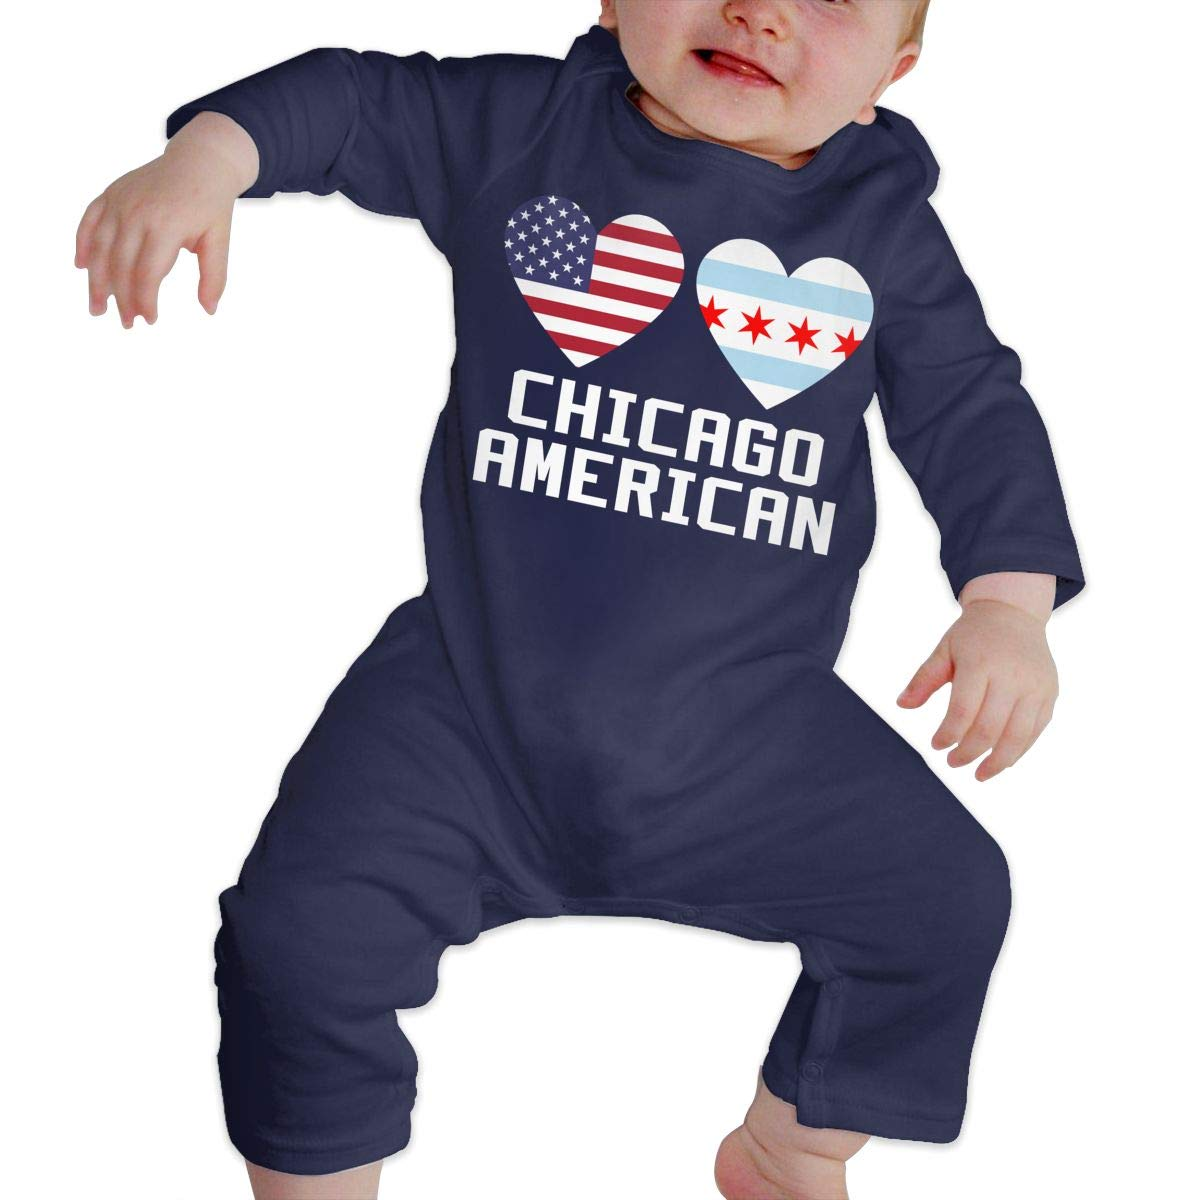 LBJQ8 Chicago American Hearts Infant Baby Girl Boys Essential Basic Bodysuits Coverall Jumpsuit